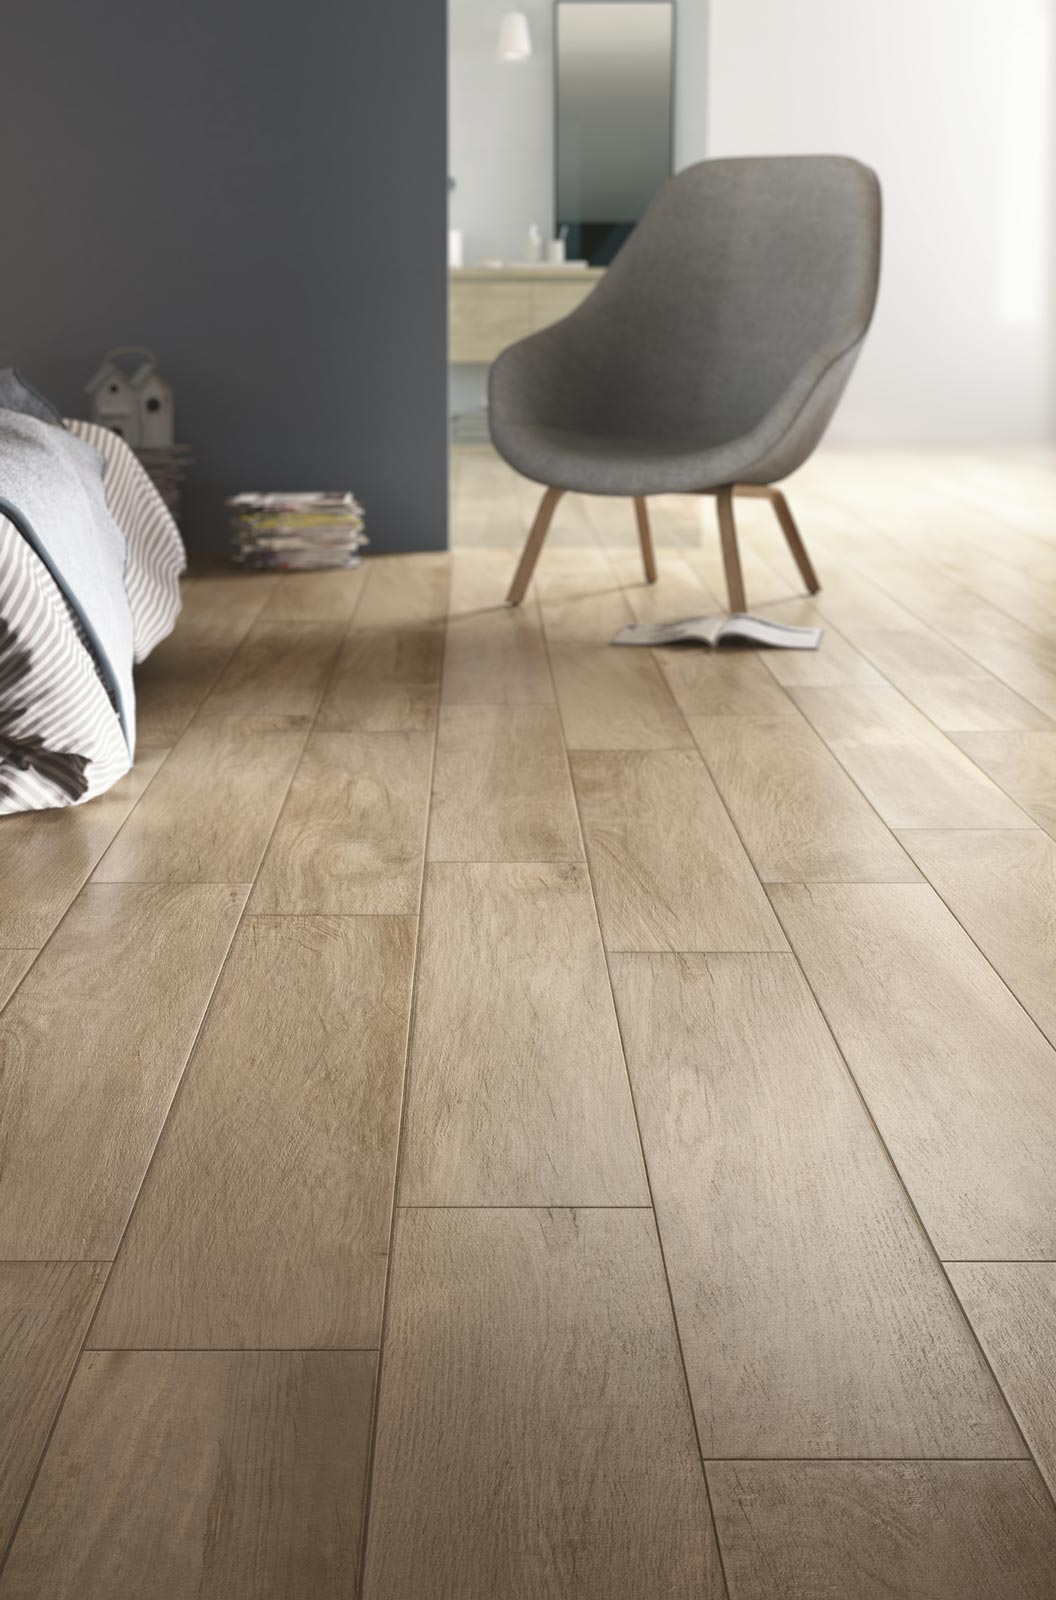 Woodplace wood effect porcelain stoneware ragno for Plinthe en bois sur carrelage